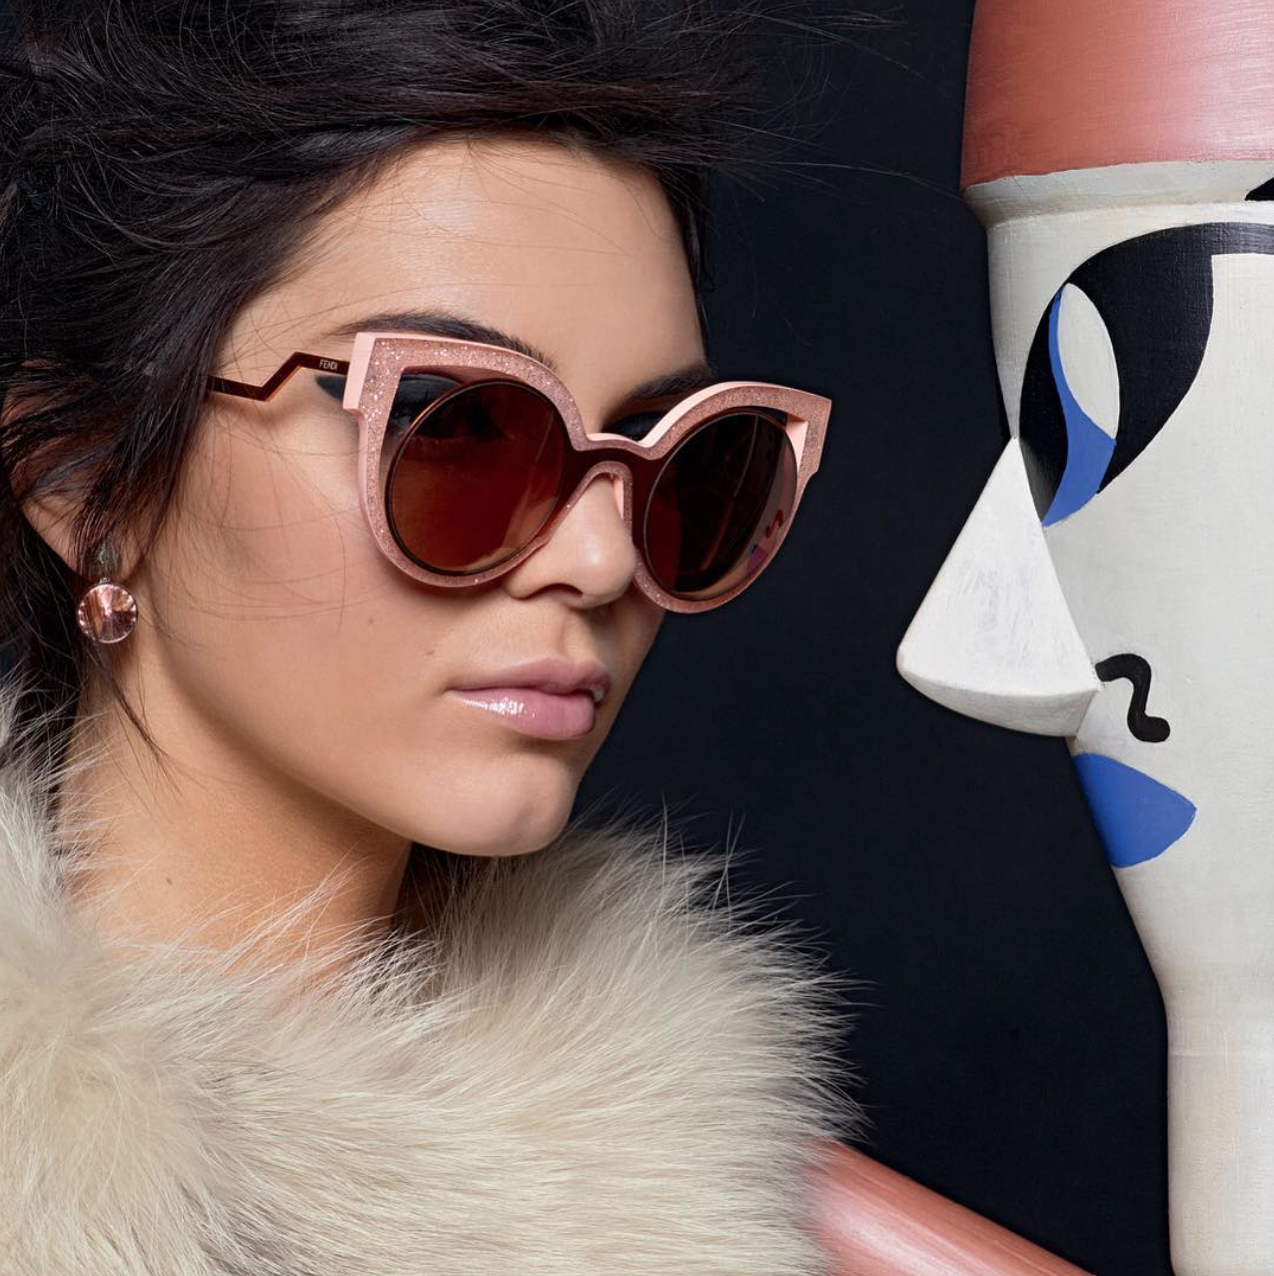 The Coolest Summer 2015 Sunglasses to Invest In forecast